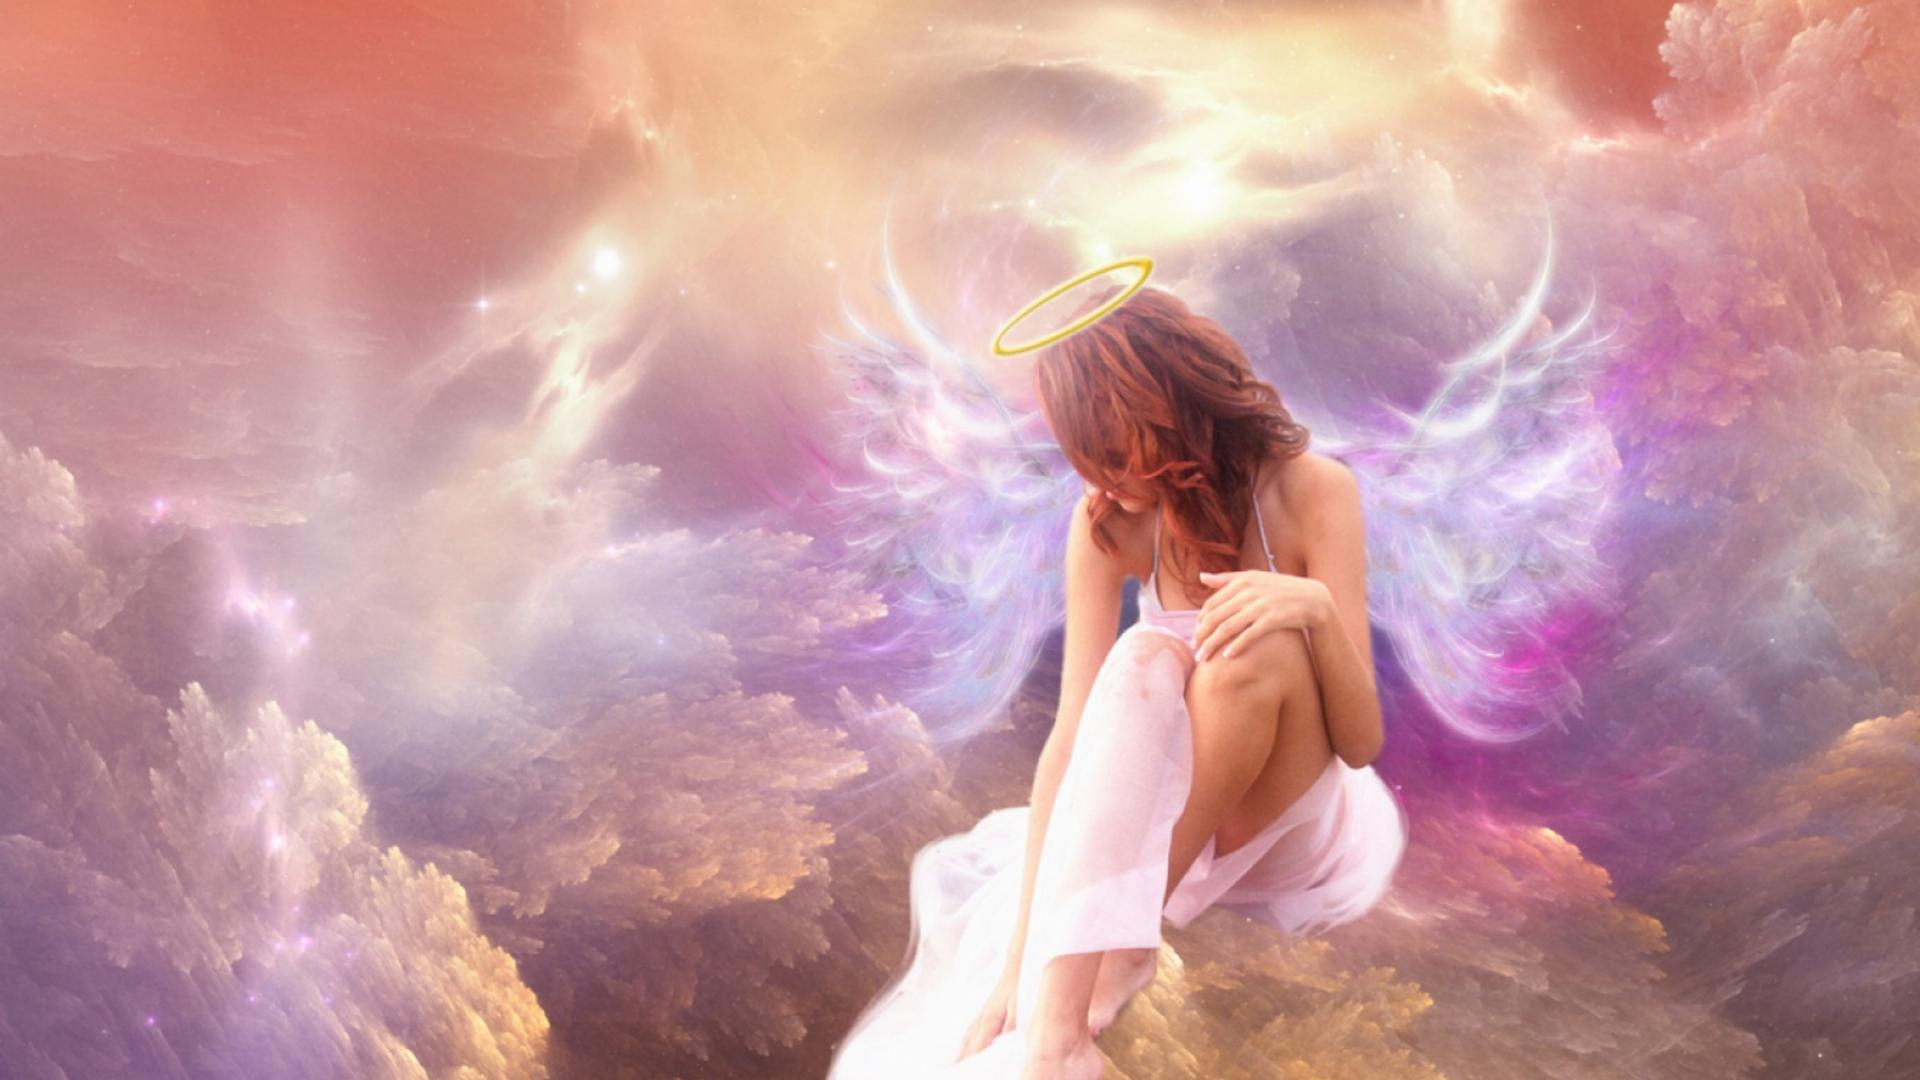 Fantasy Angel Wallpaper 19201080 122257 HD Wallpaper Res 1920x1080 1920x1080